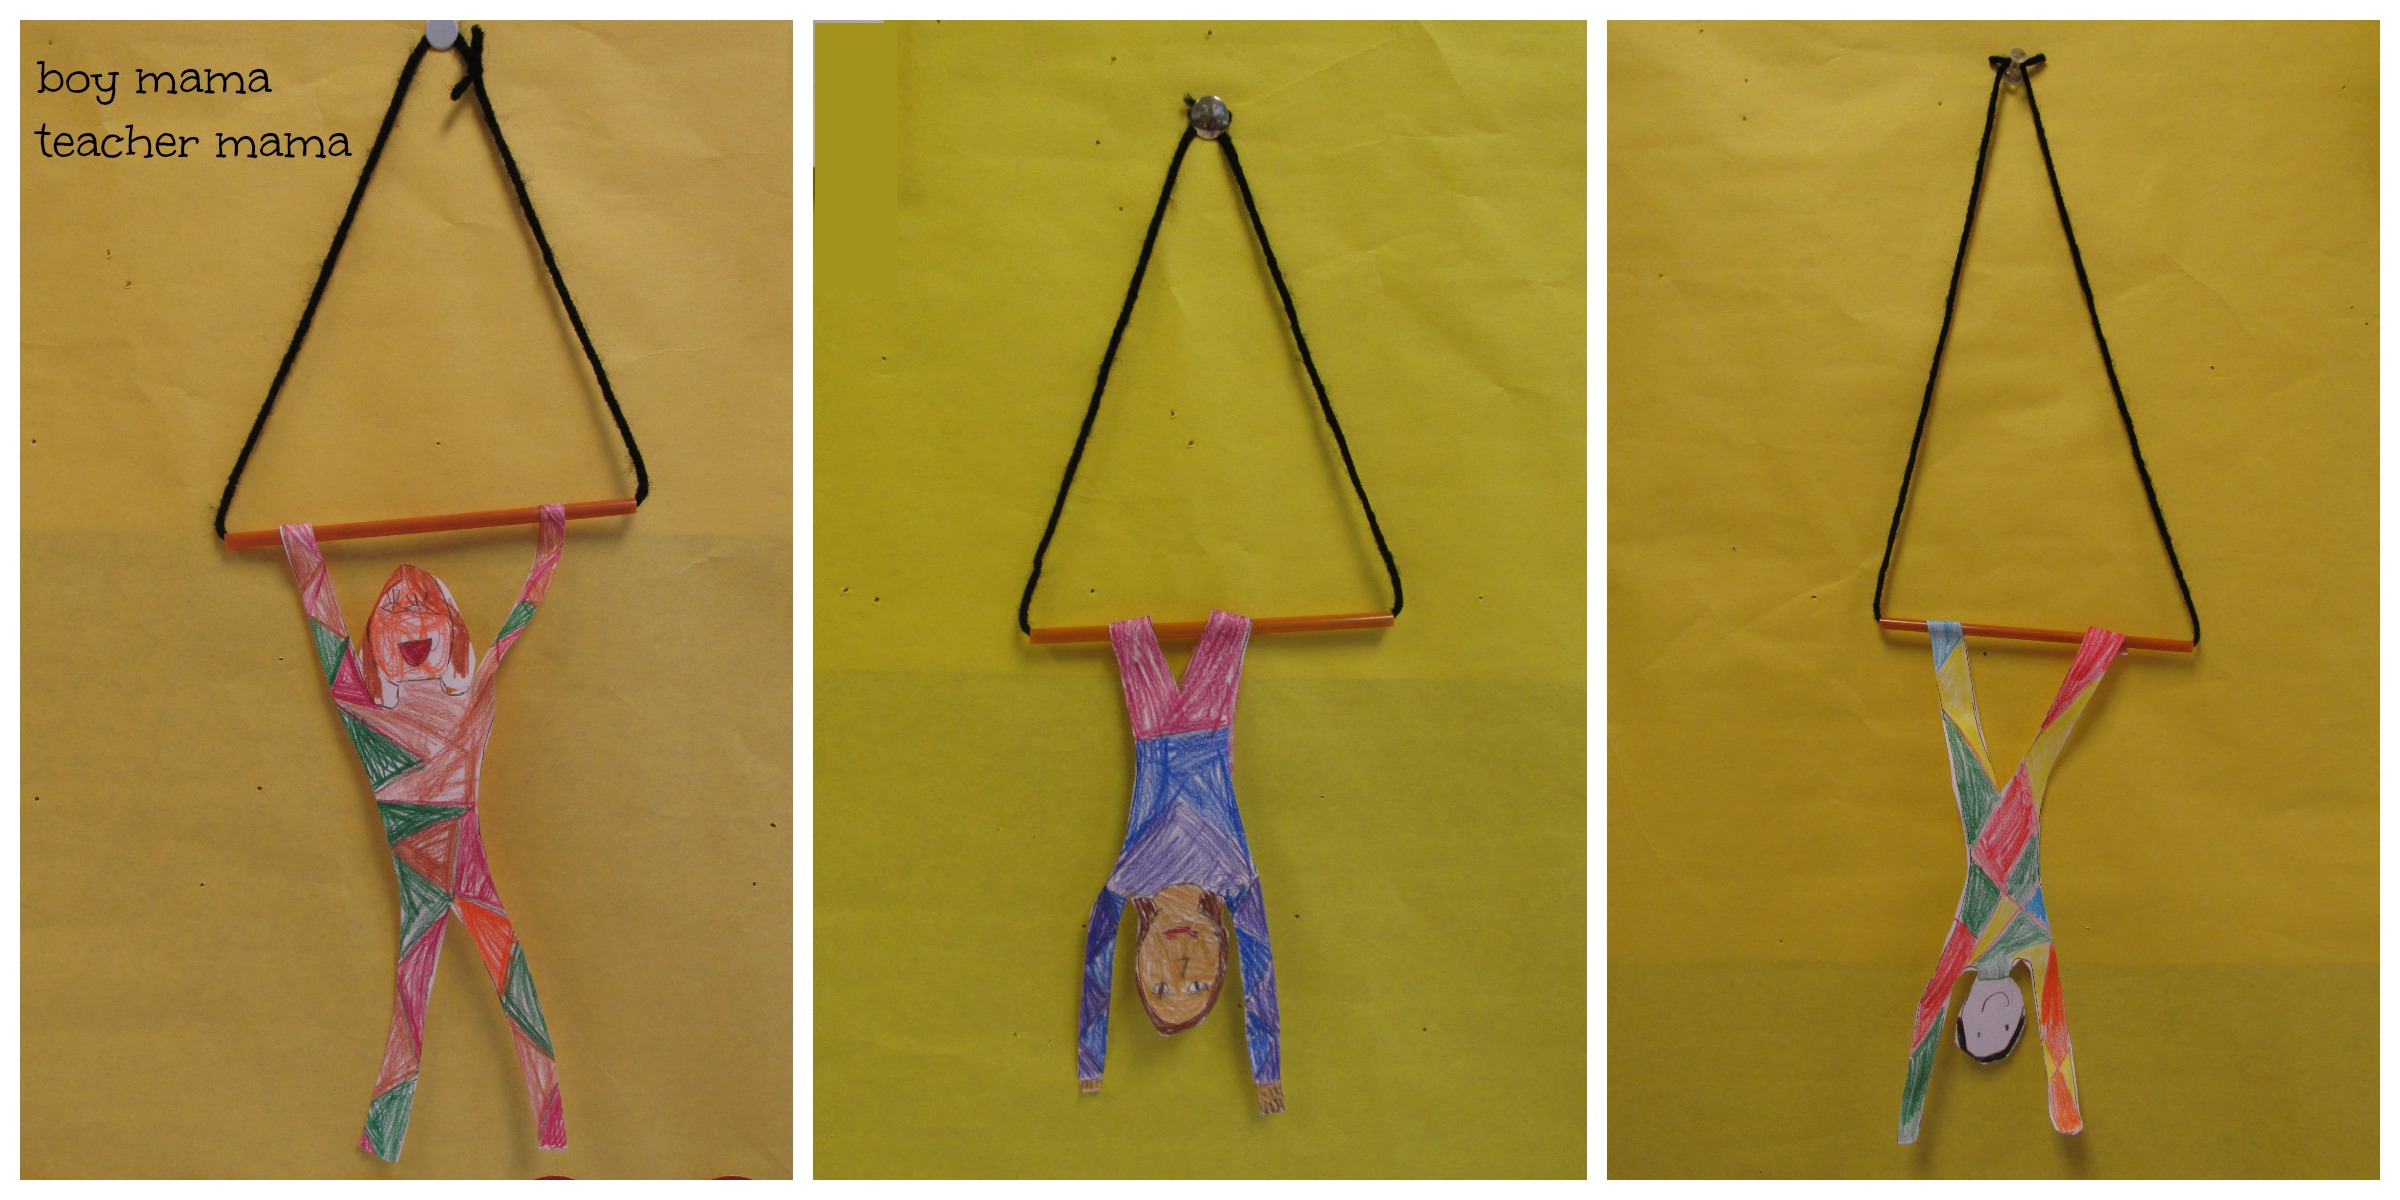 Teacher Mama Circus Craft Trapeze Artist Boy Mama Teacher Mama